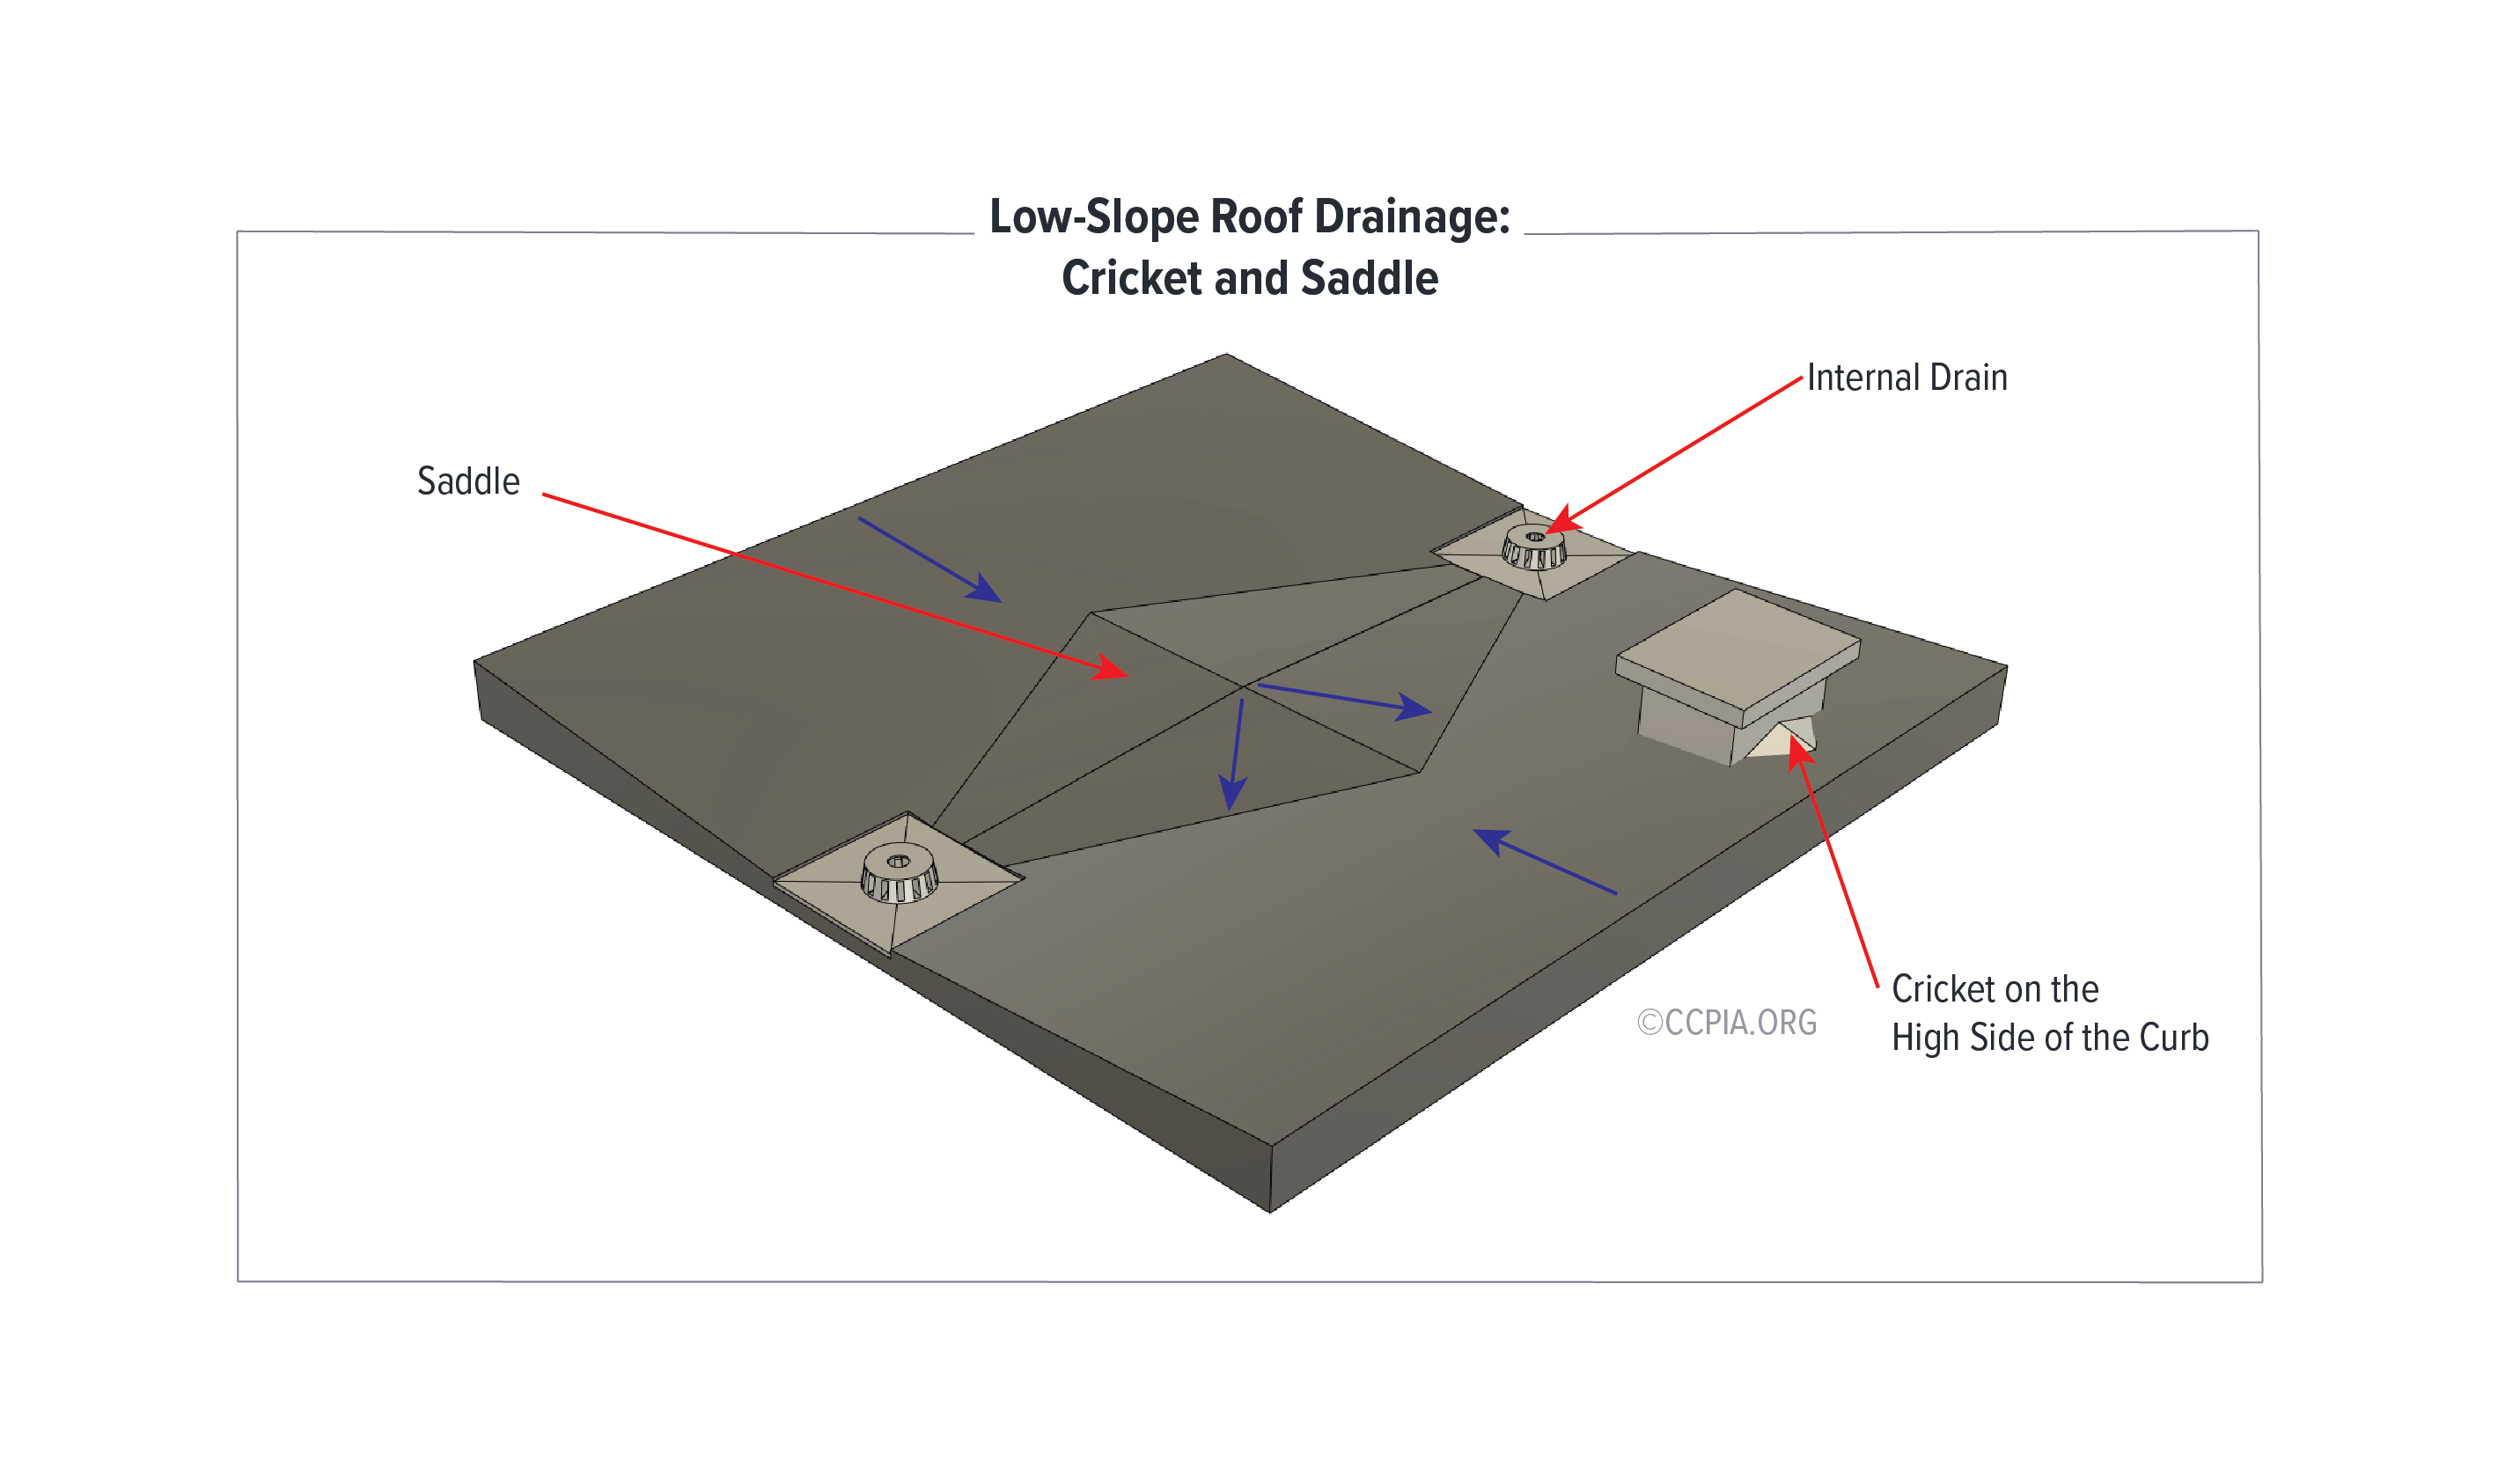 Low-Slope Roof Drainage: Cricket and Saddle